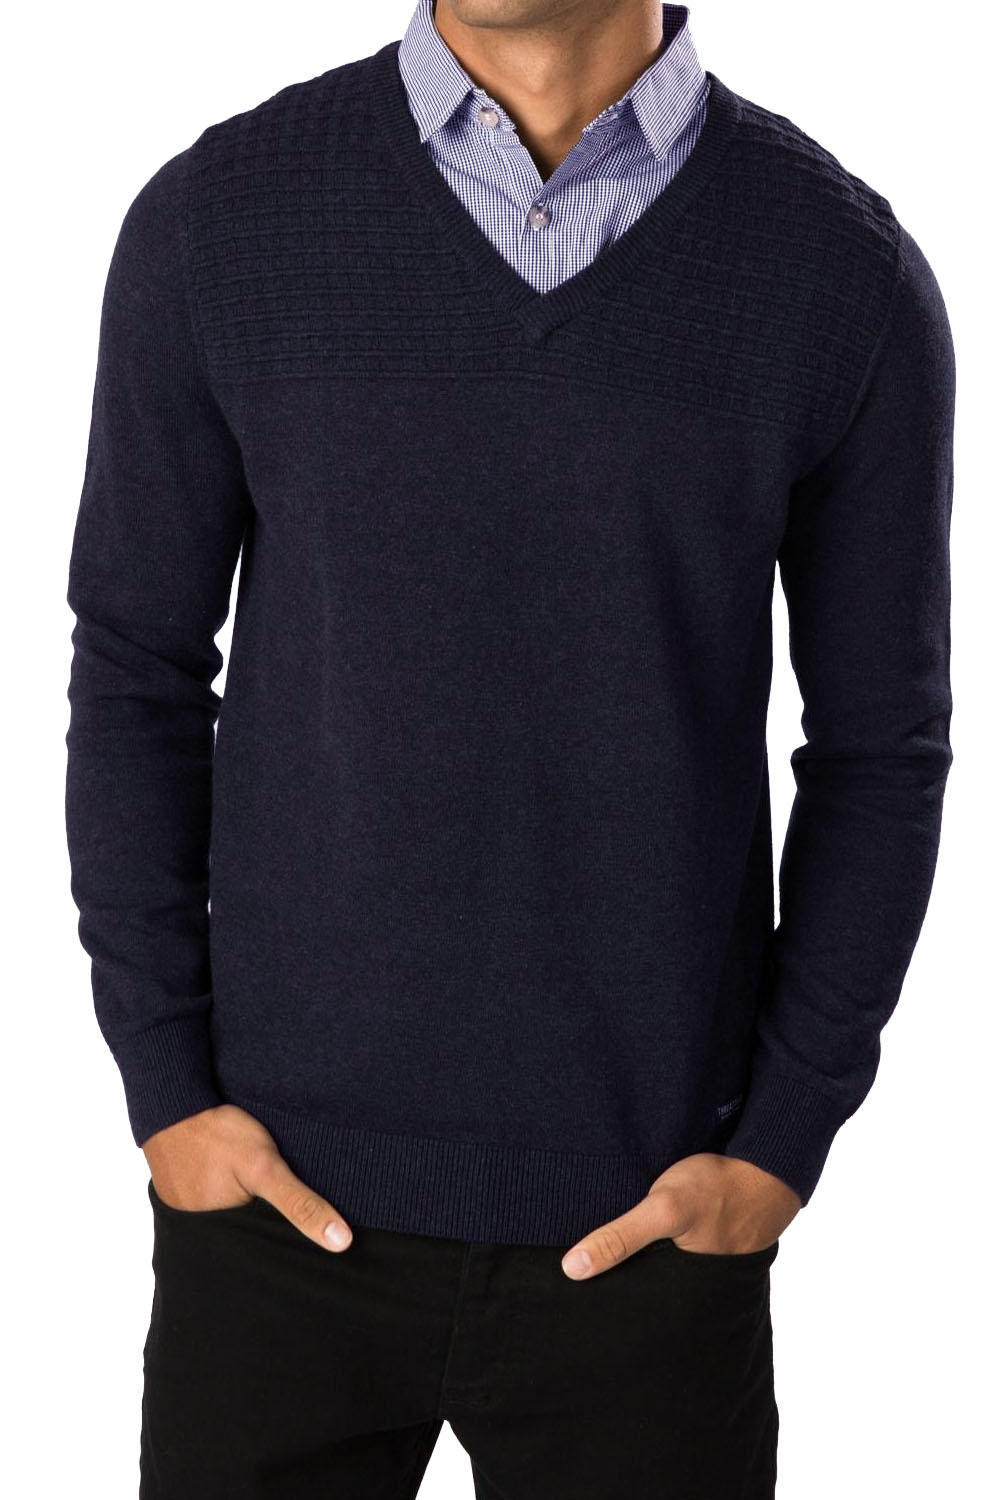 Find mens mock shirt jumper at ShopStyle. Shop the latest collection of mens mock shirt jumper from the most popular stores - all in one place.